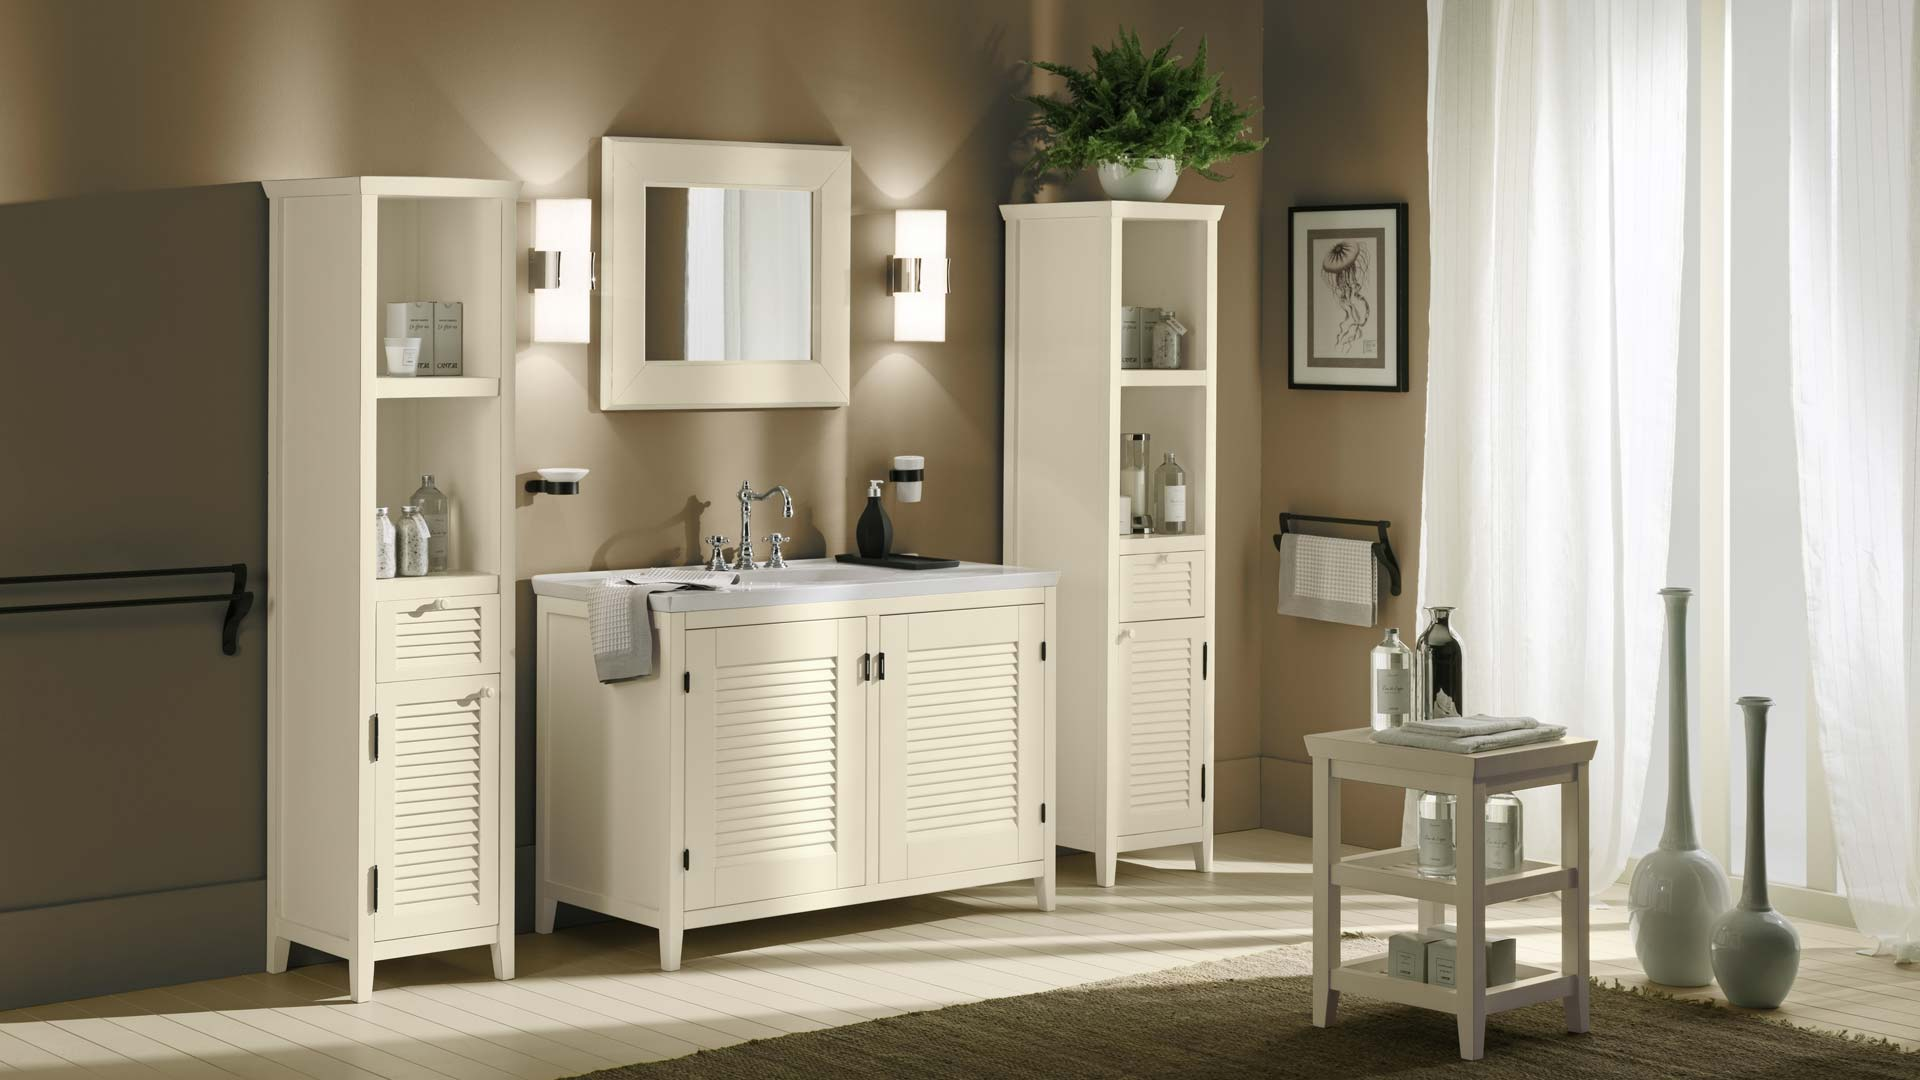 Bathroom furniture made with solid wood Ciro - Cantori